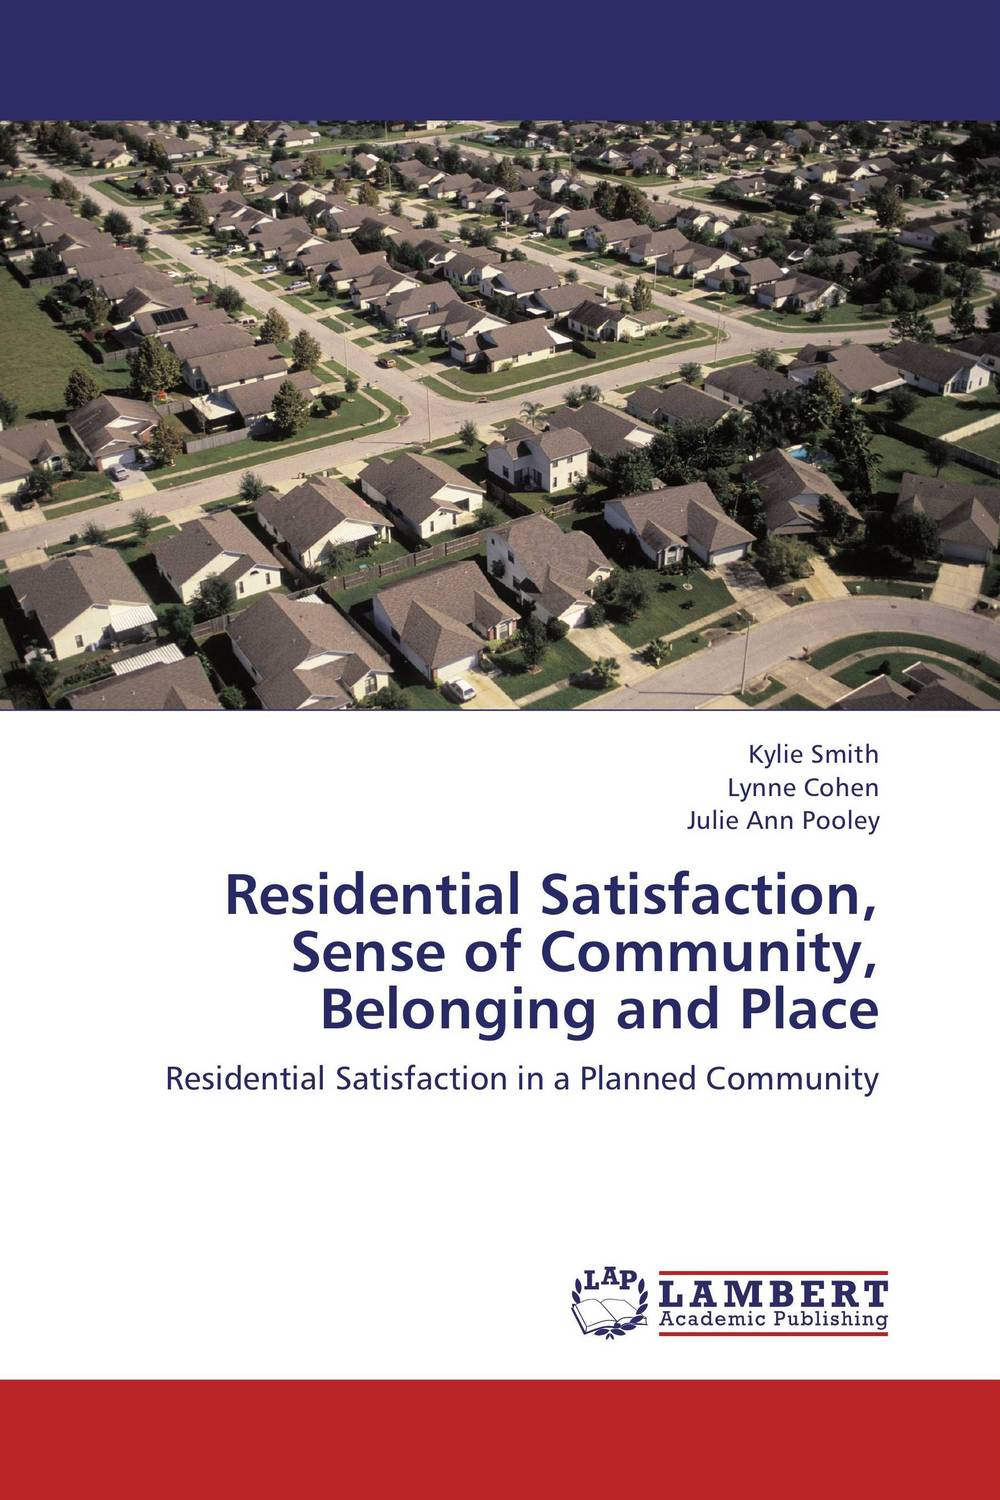 Residential Satisfaction, Sense of Community, Belonging and Place a sense of wonder